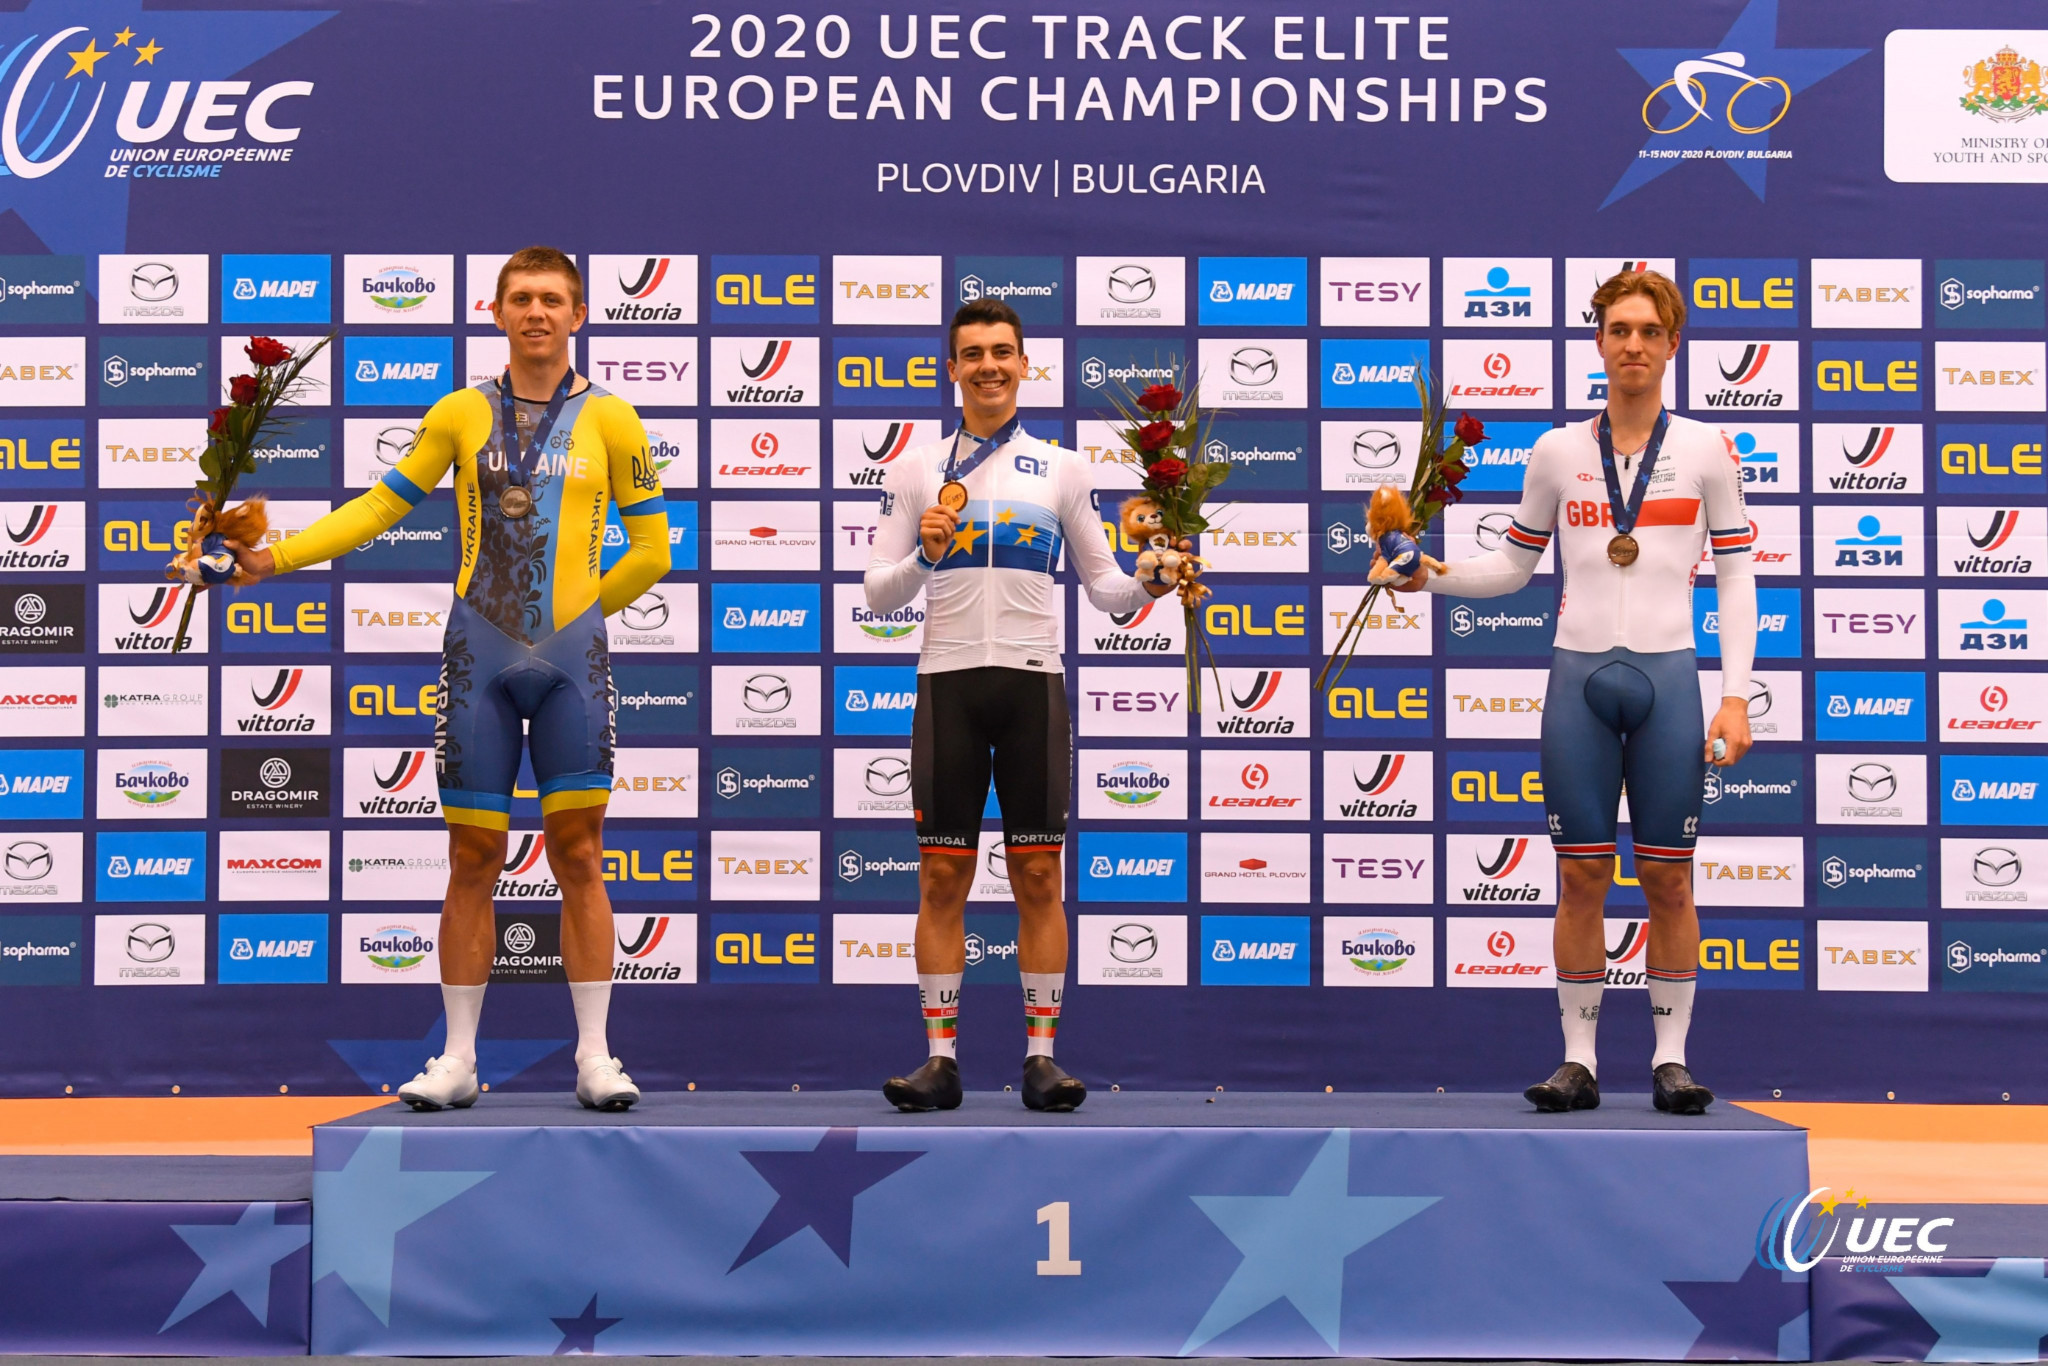 Double gold for Britain on day two of UEC Elite Track European Championships